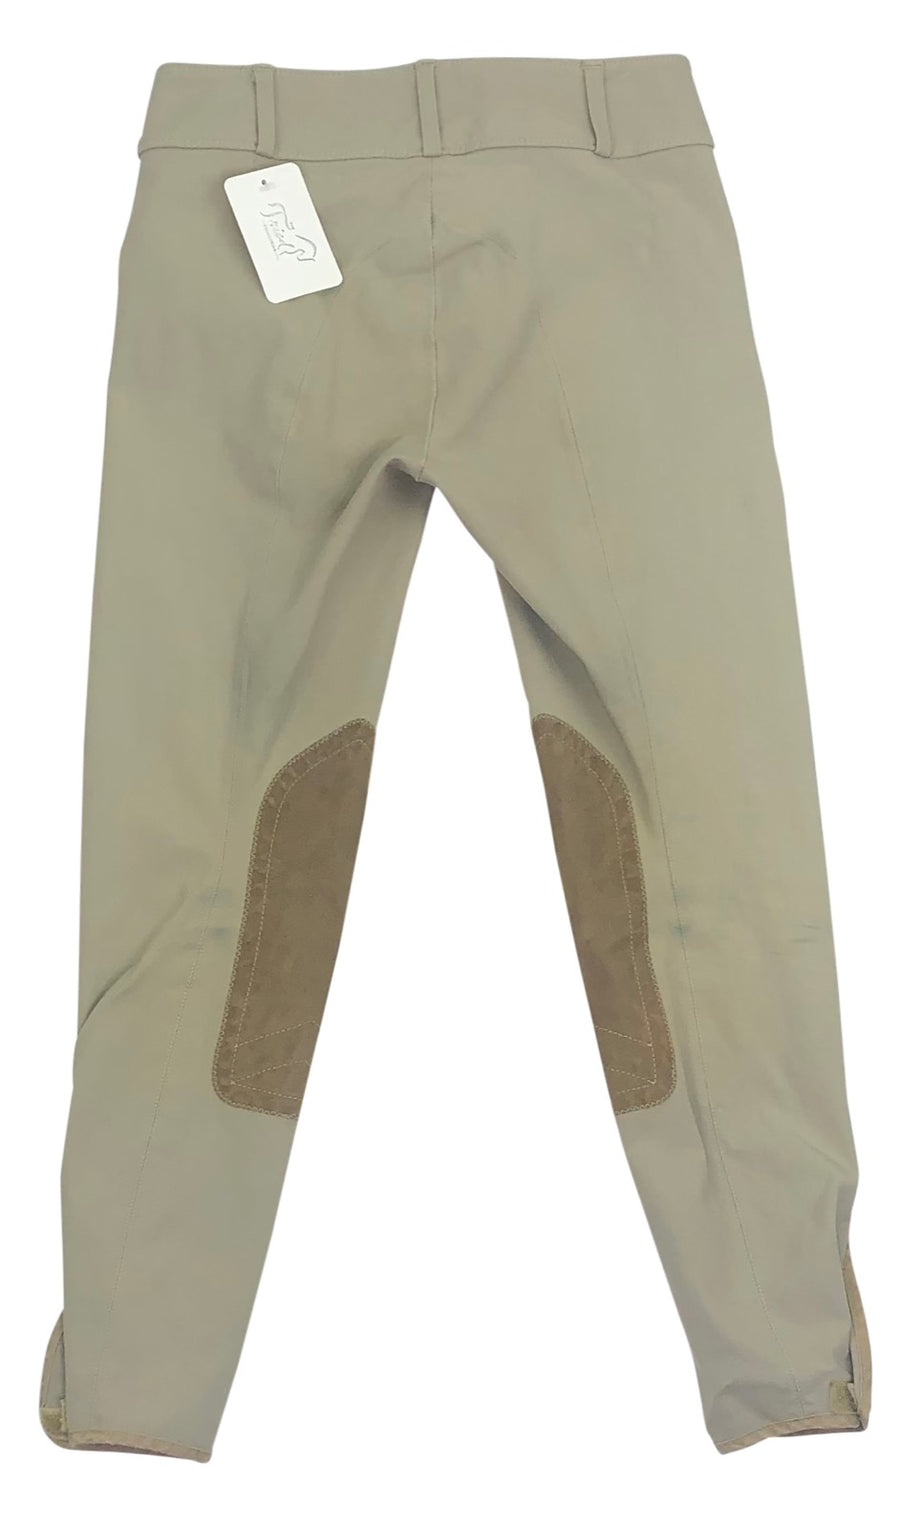 Back of Tailored Sportsman Trophy Hunter Breeches in Tan